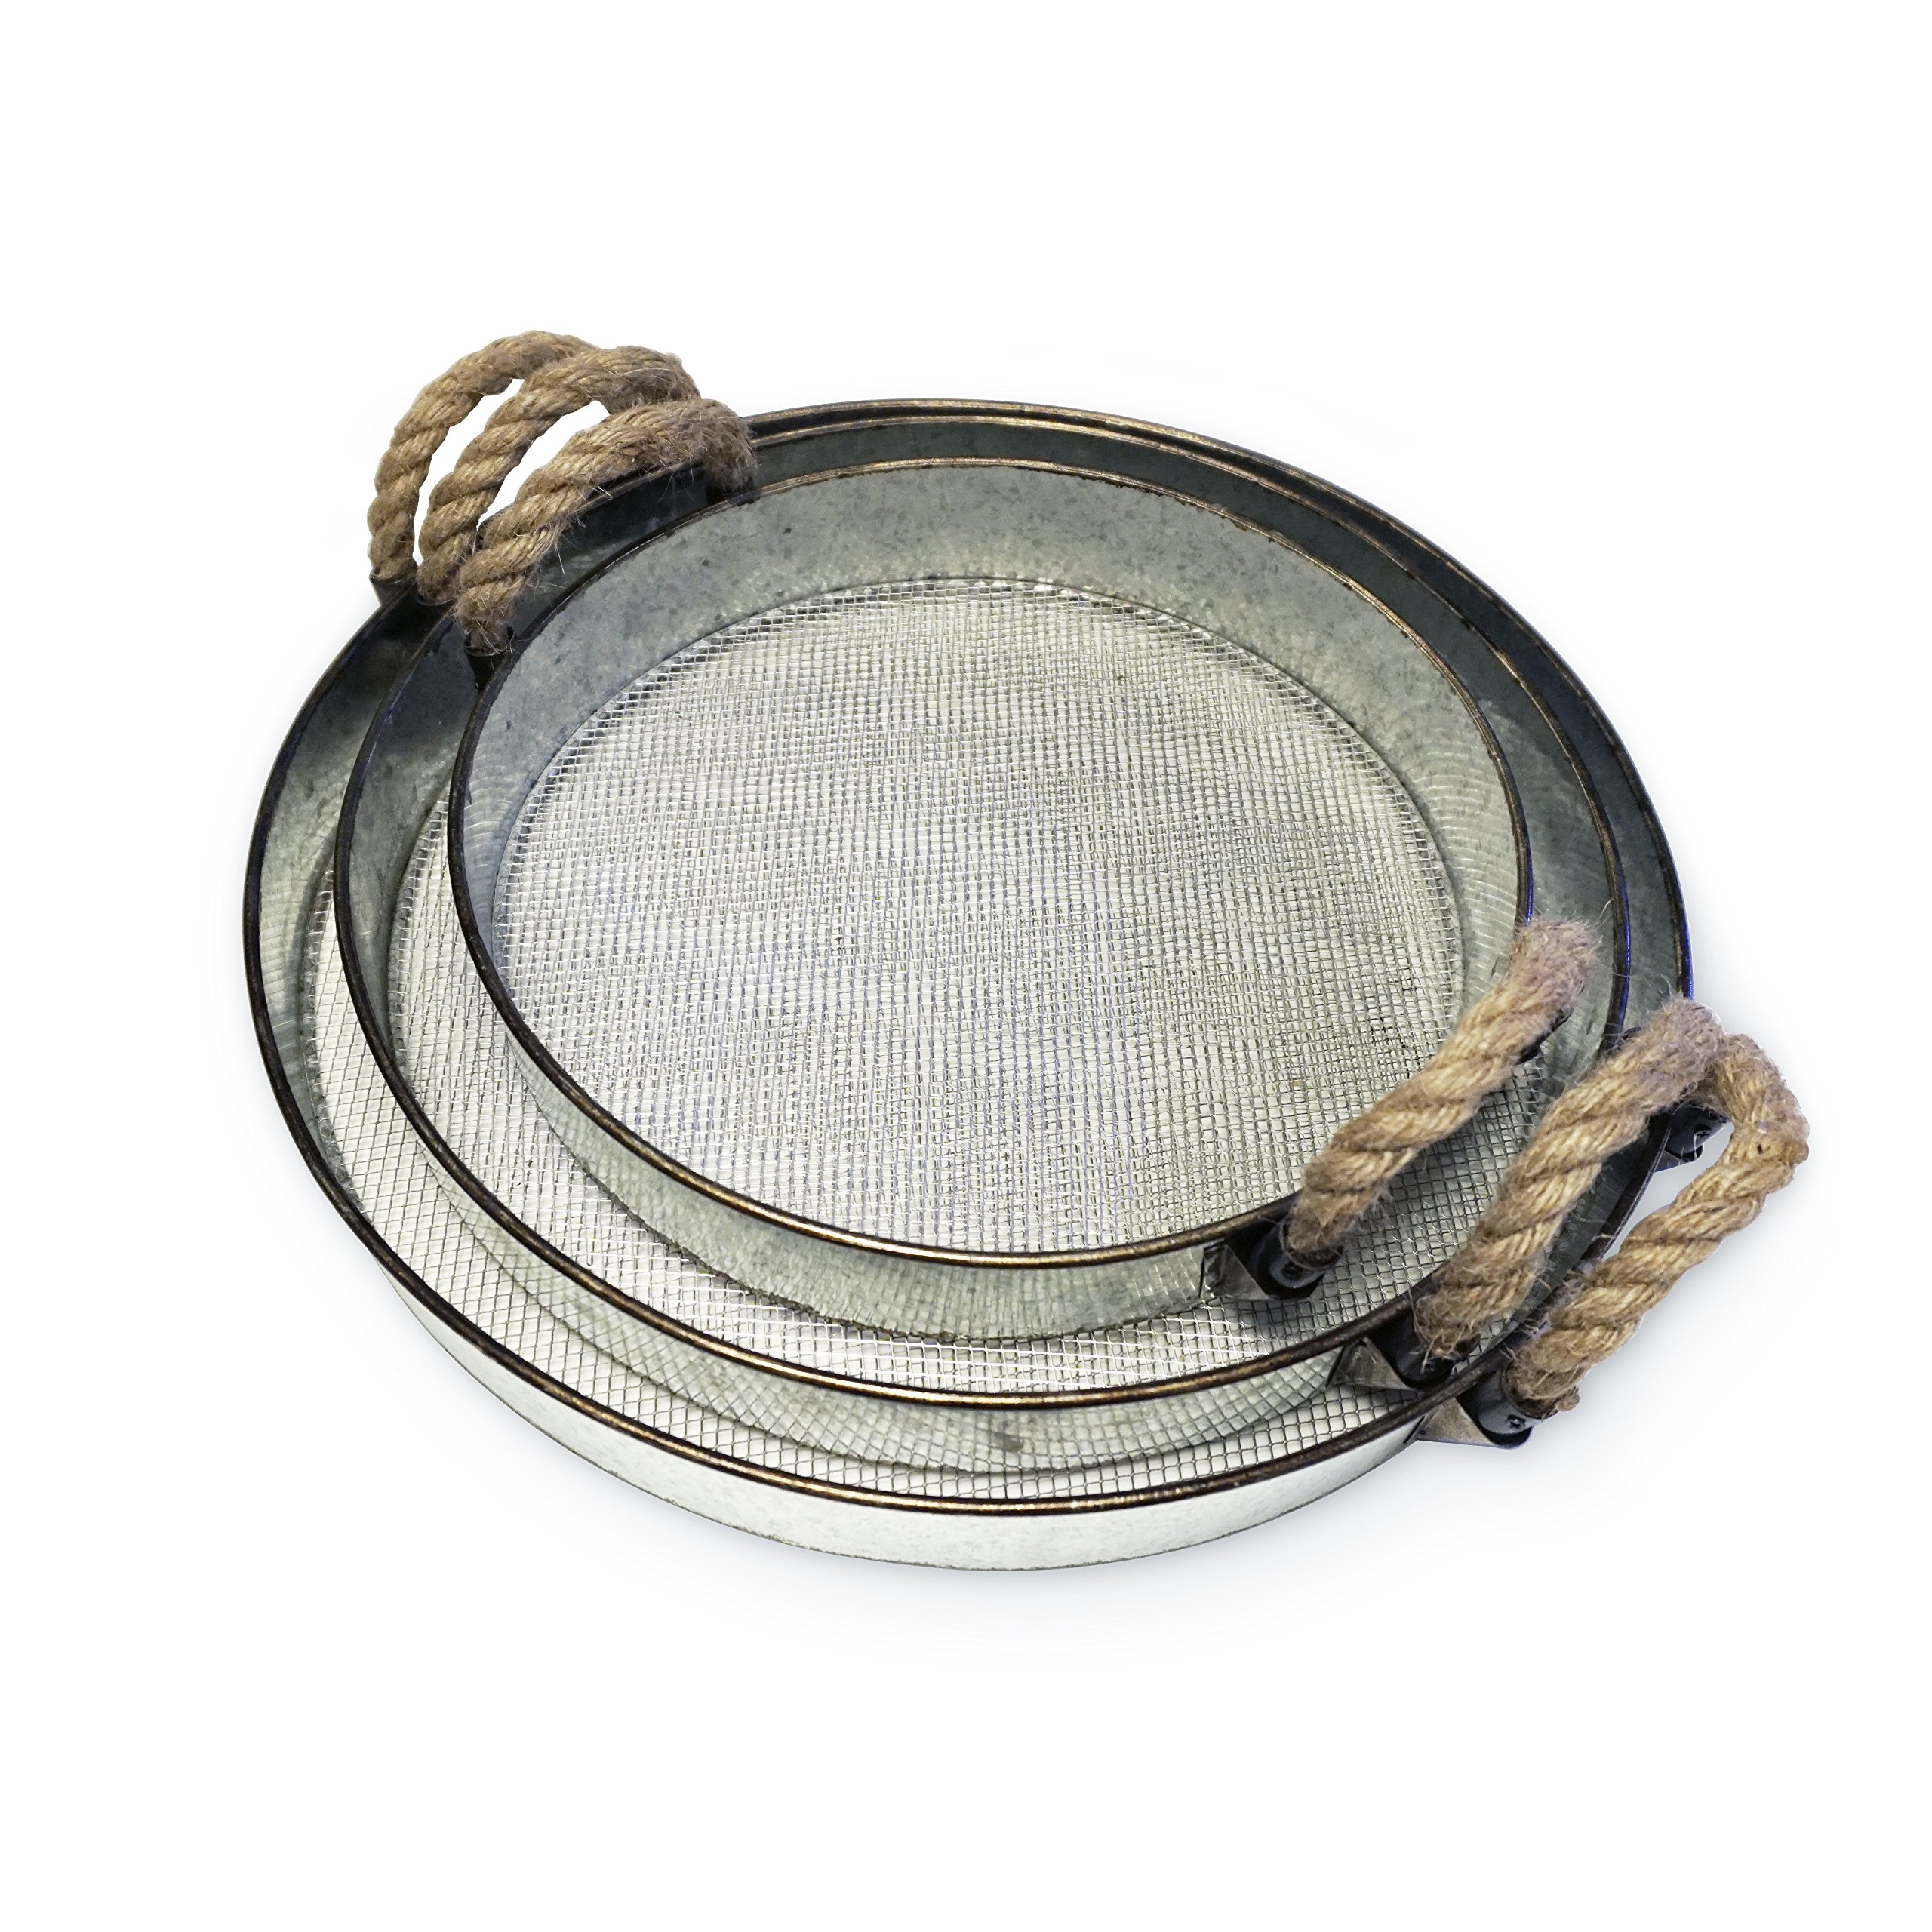 Round Metal Decorative Nesting Tray Set, Mesh Bottom with Rope Handles, Vintage Rustic Distressed Design, Serving Trays for Country Kitchen, Coffee Table, Set of 3 by Barnyard Designs